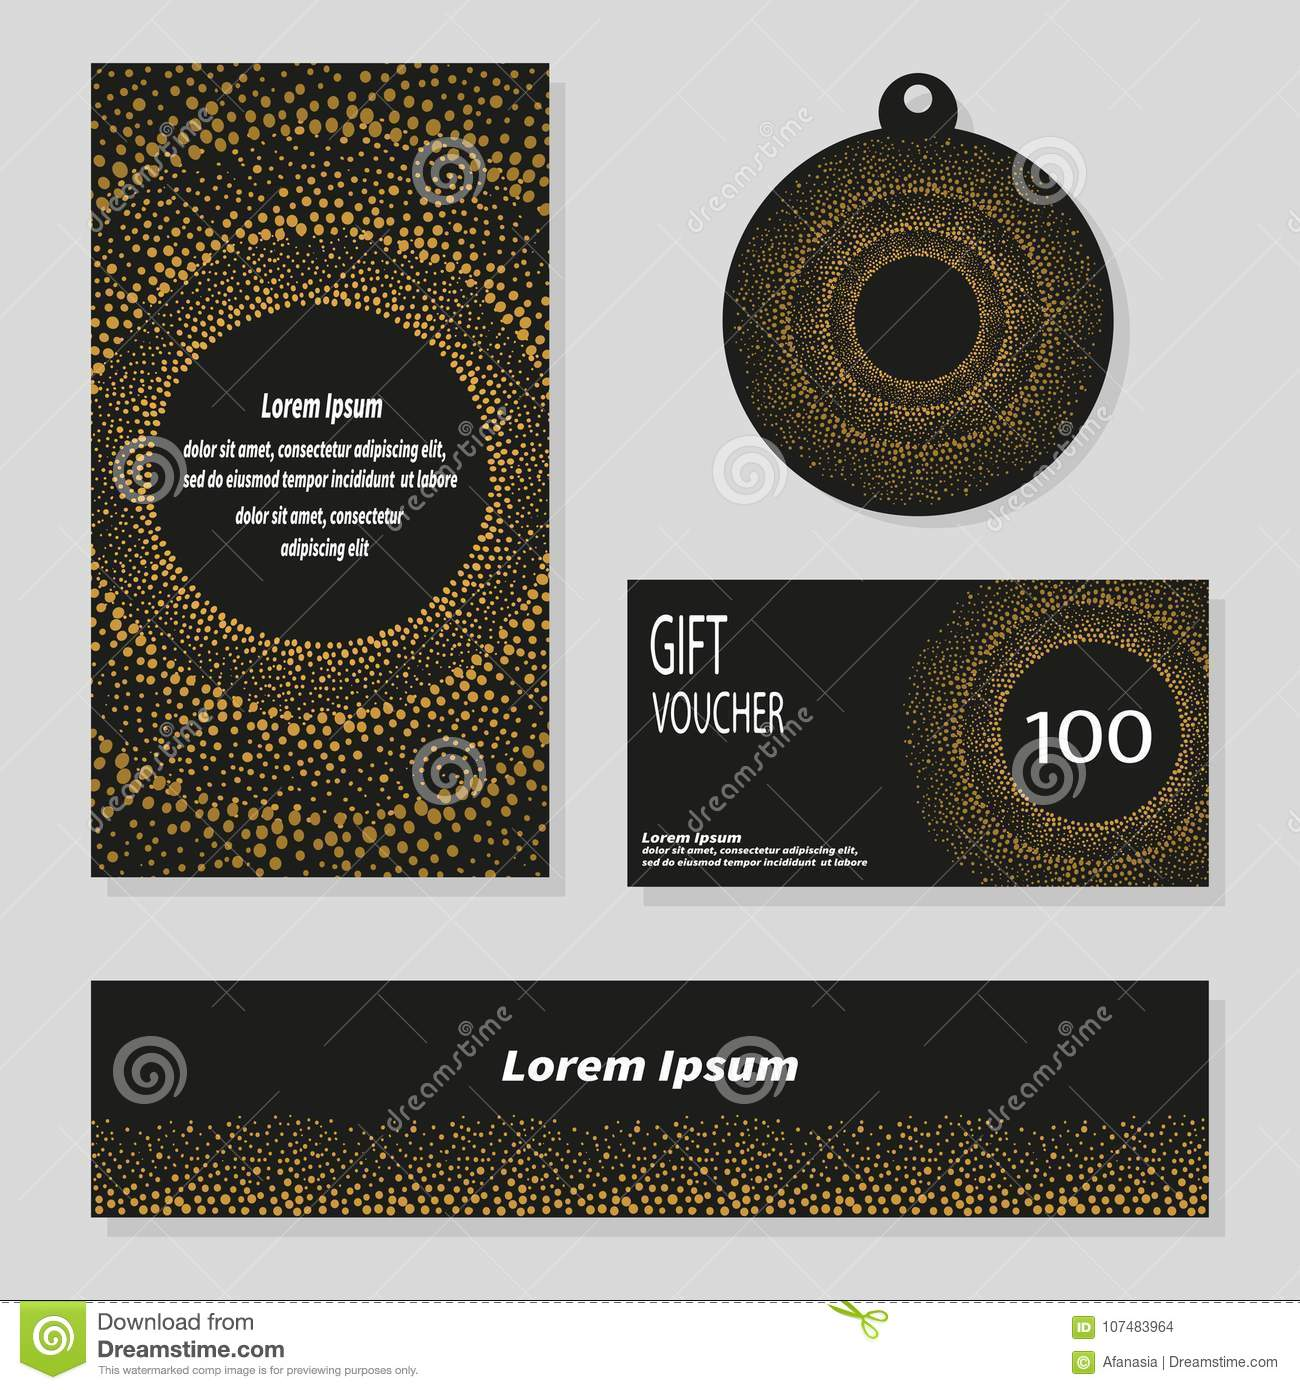 Great Z Label Templates Photos >> Logos Design Templates Set ...